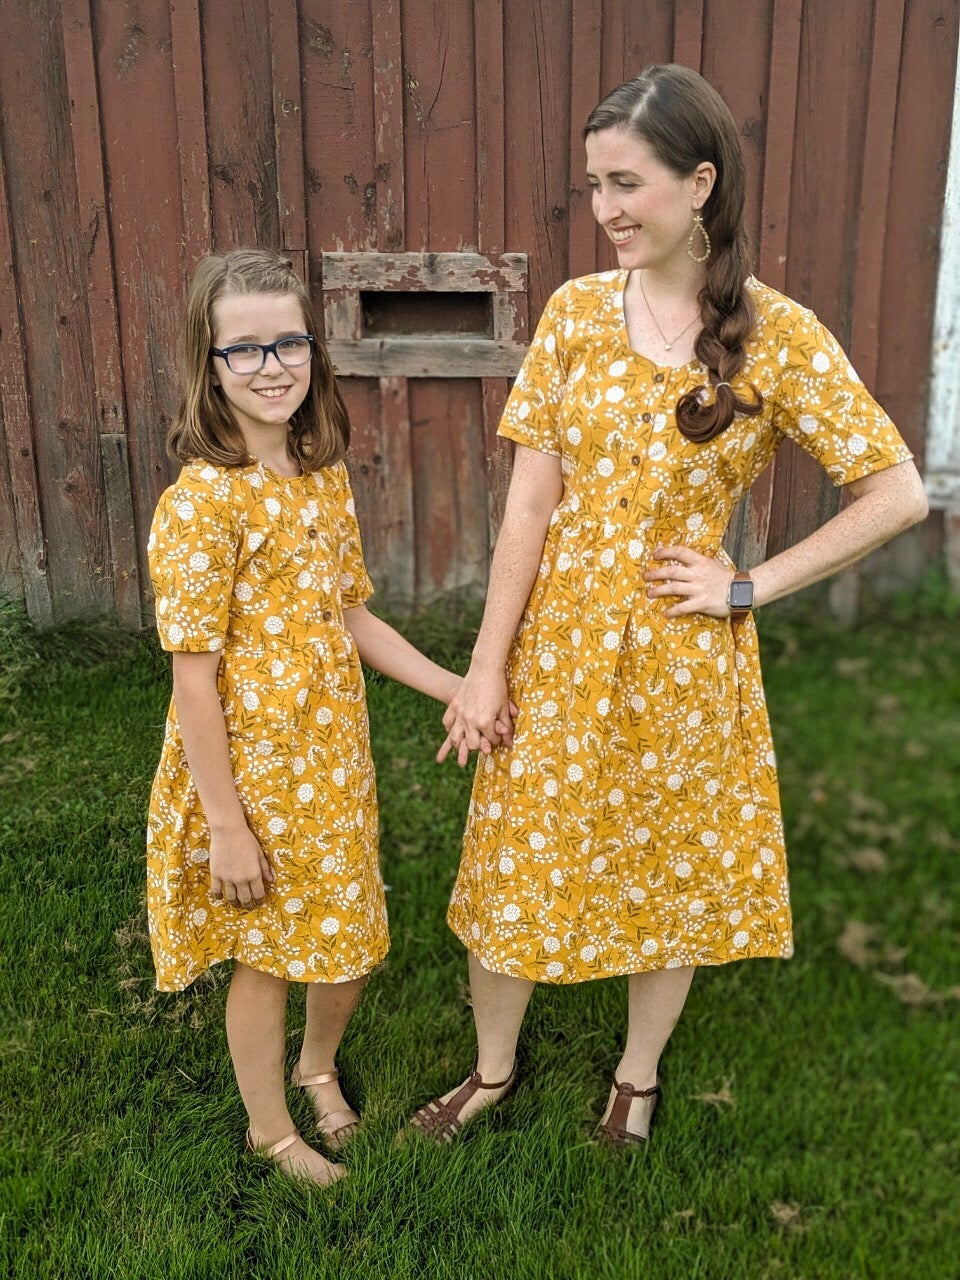 Mommy and Me Dresses -  Send Your Own Fabric!